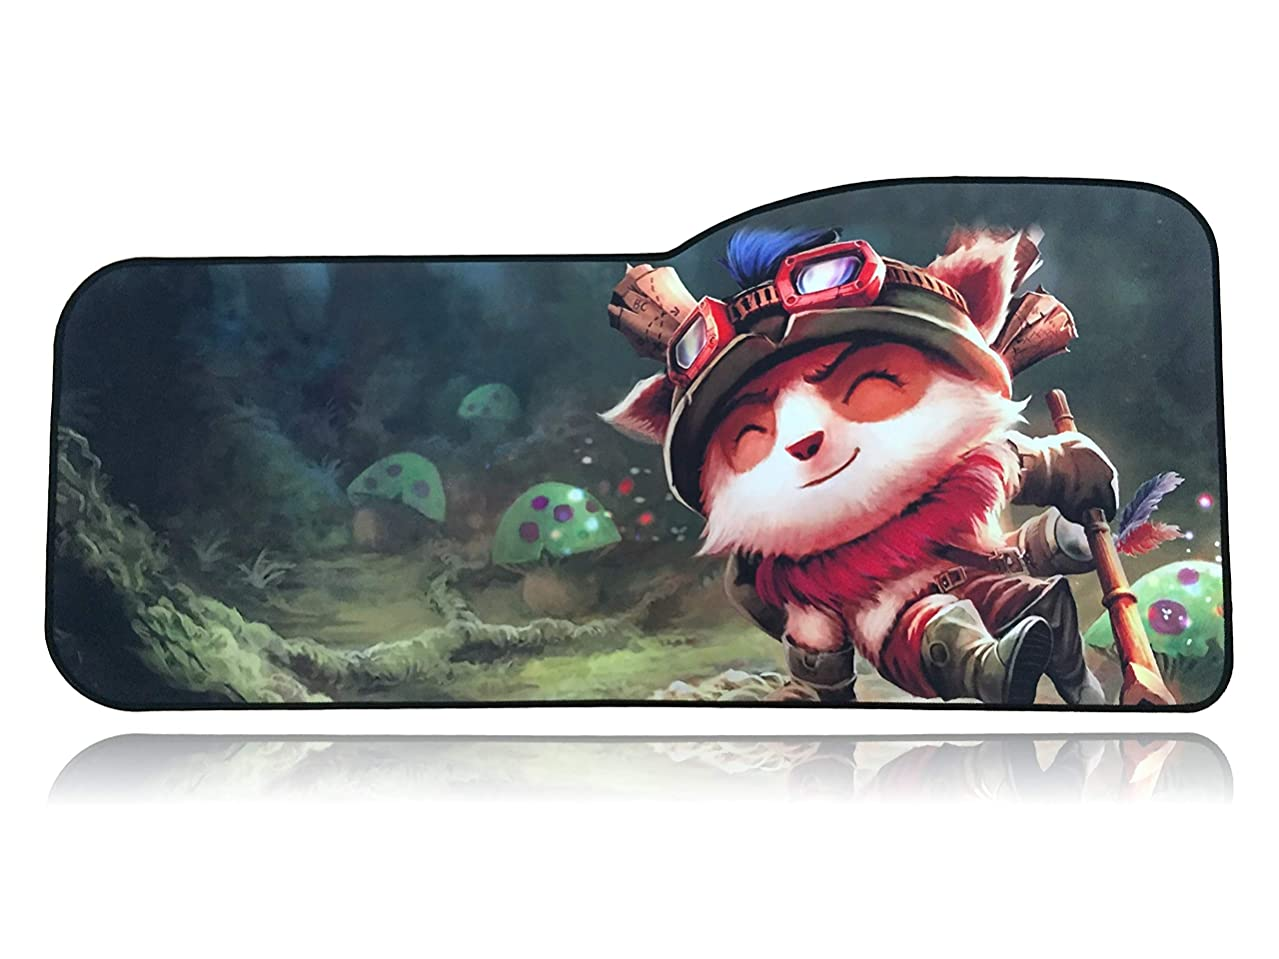 League of Legends Extended Size Custom Professional Gaming Mouse Pad - Anti Slip Rubber Base - Stitched Edges - Large Desk Mat - 28.5